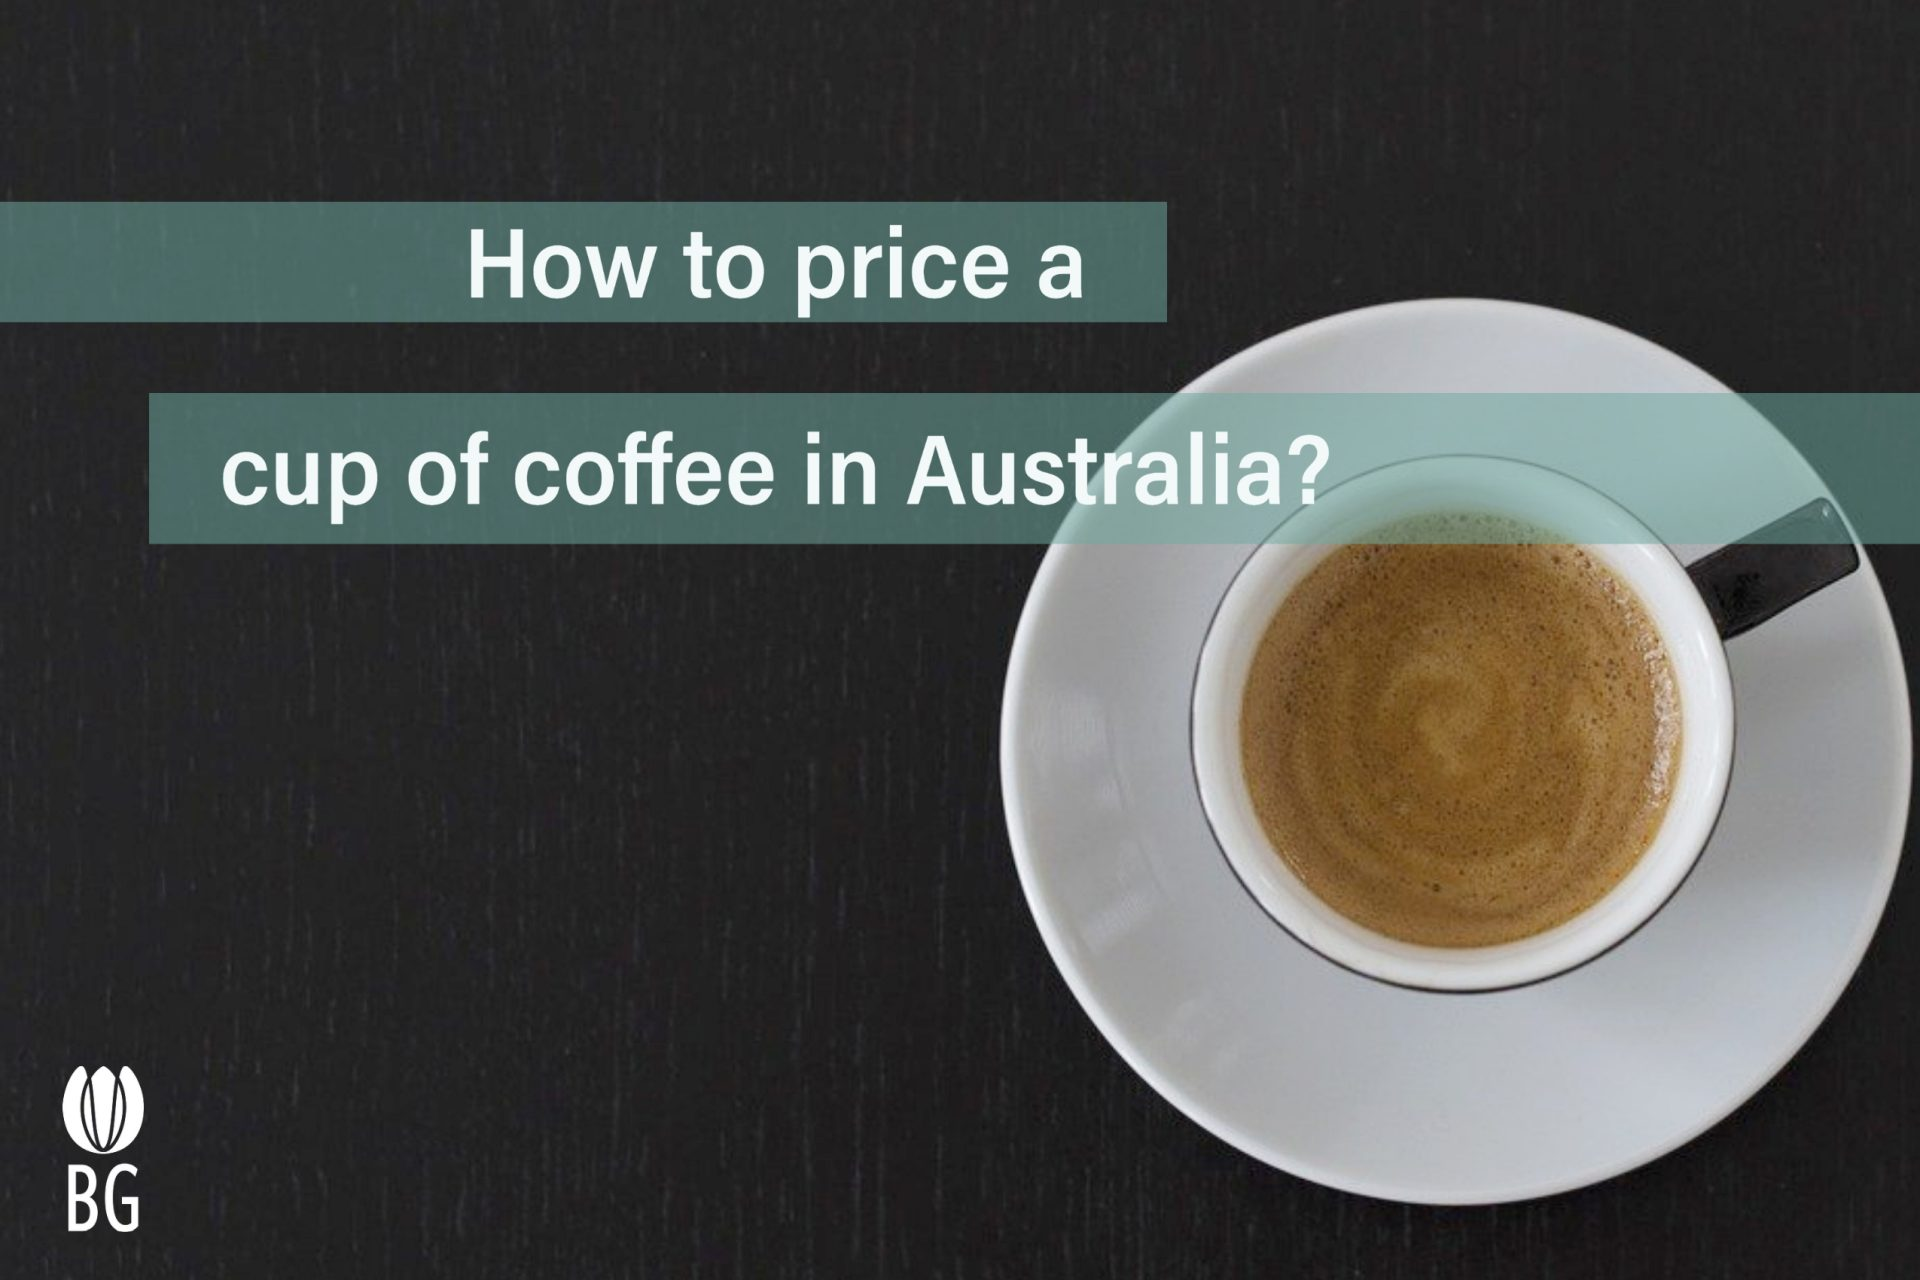 how to price a cup of coffee